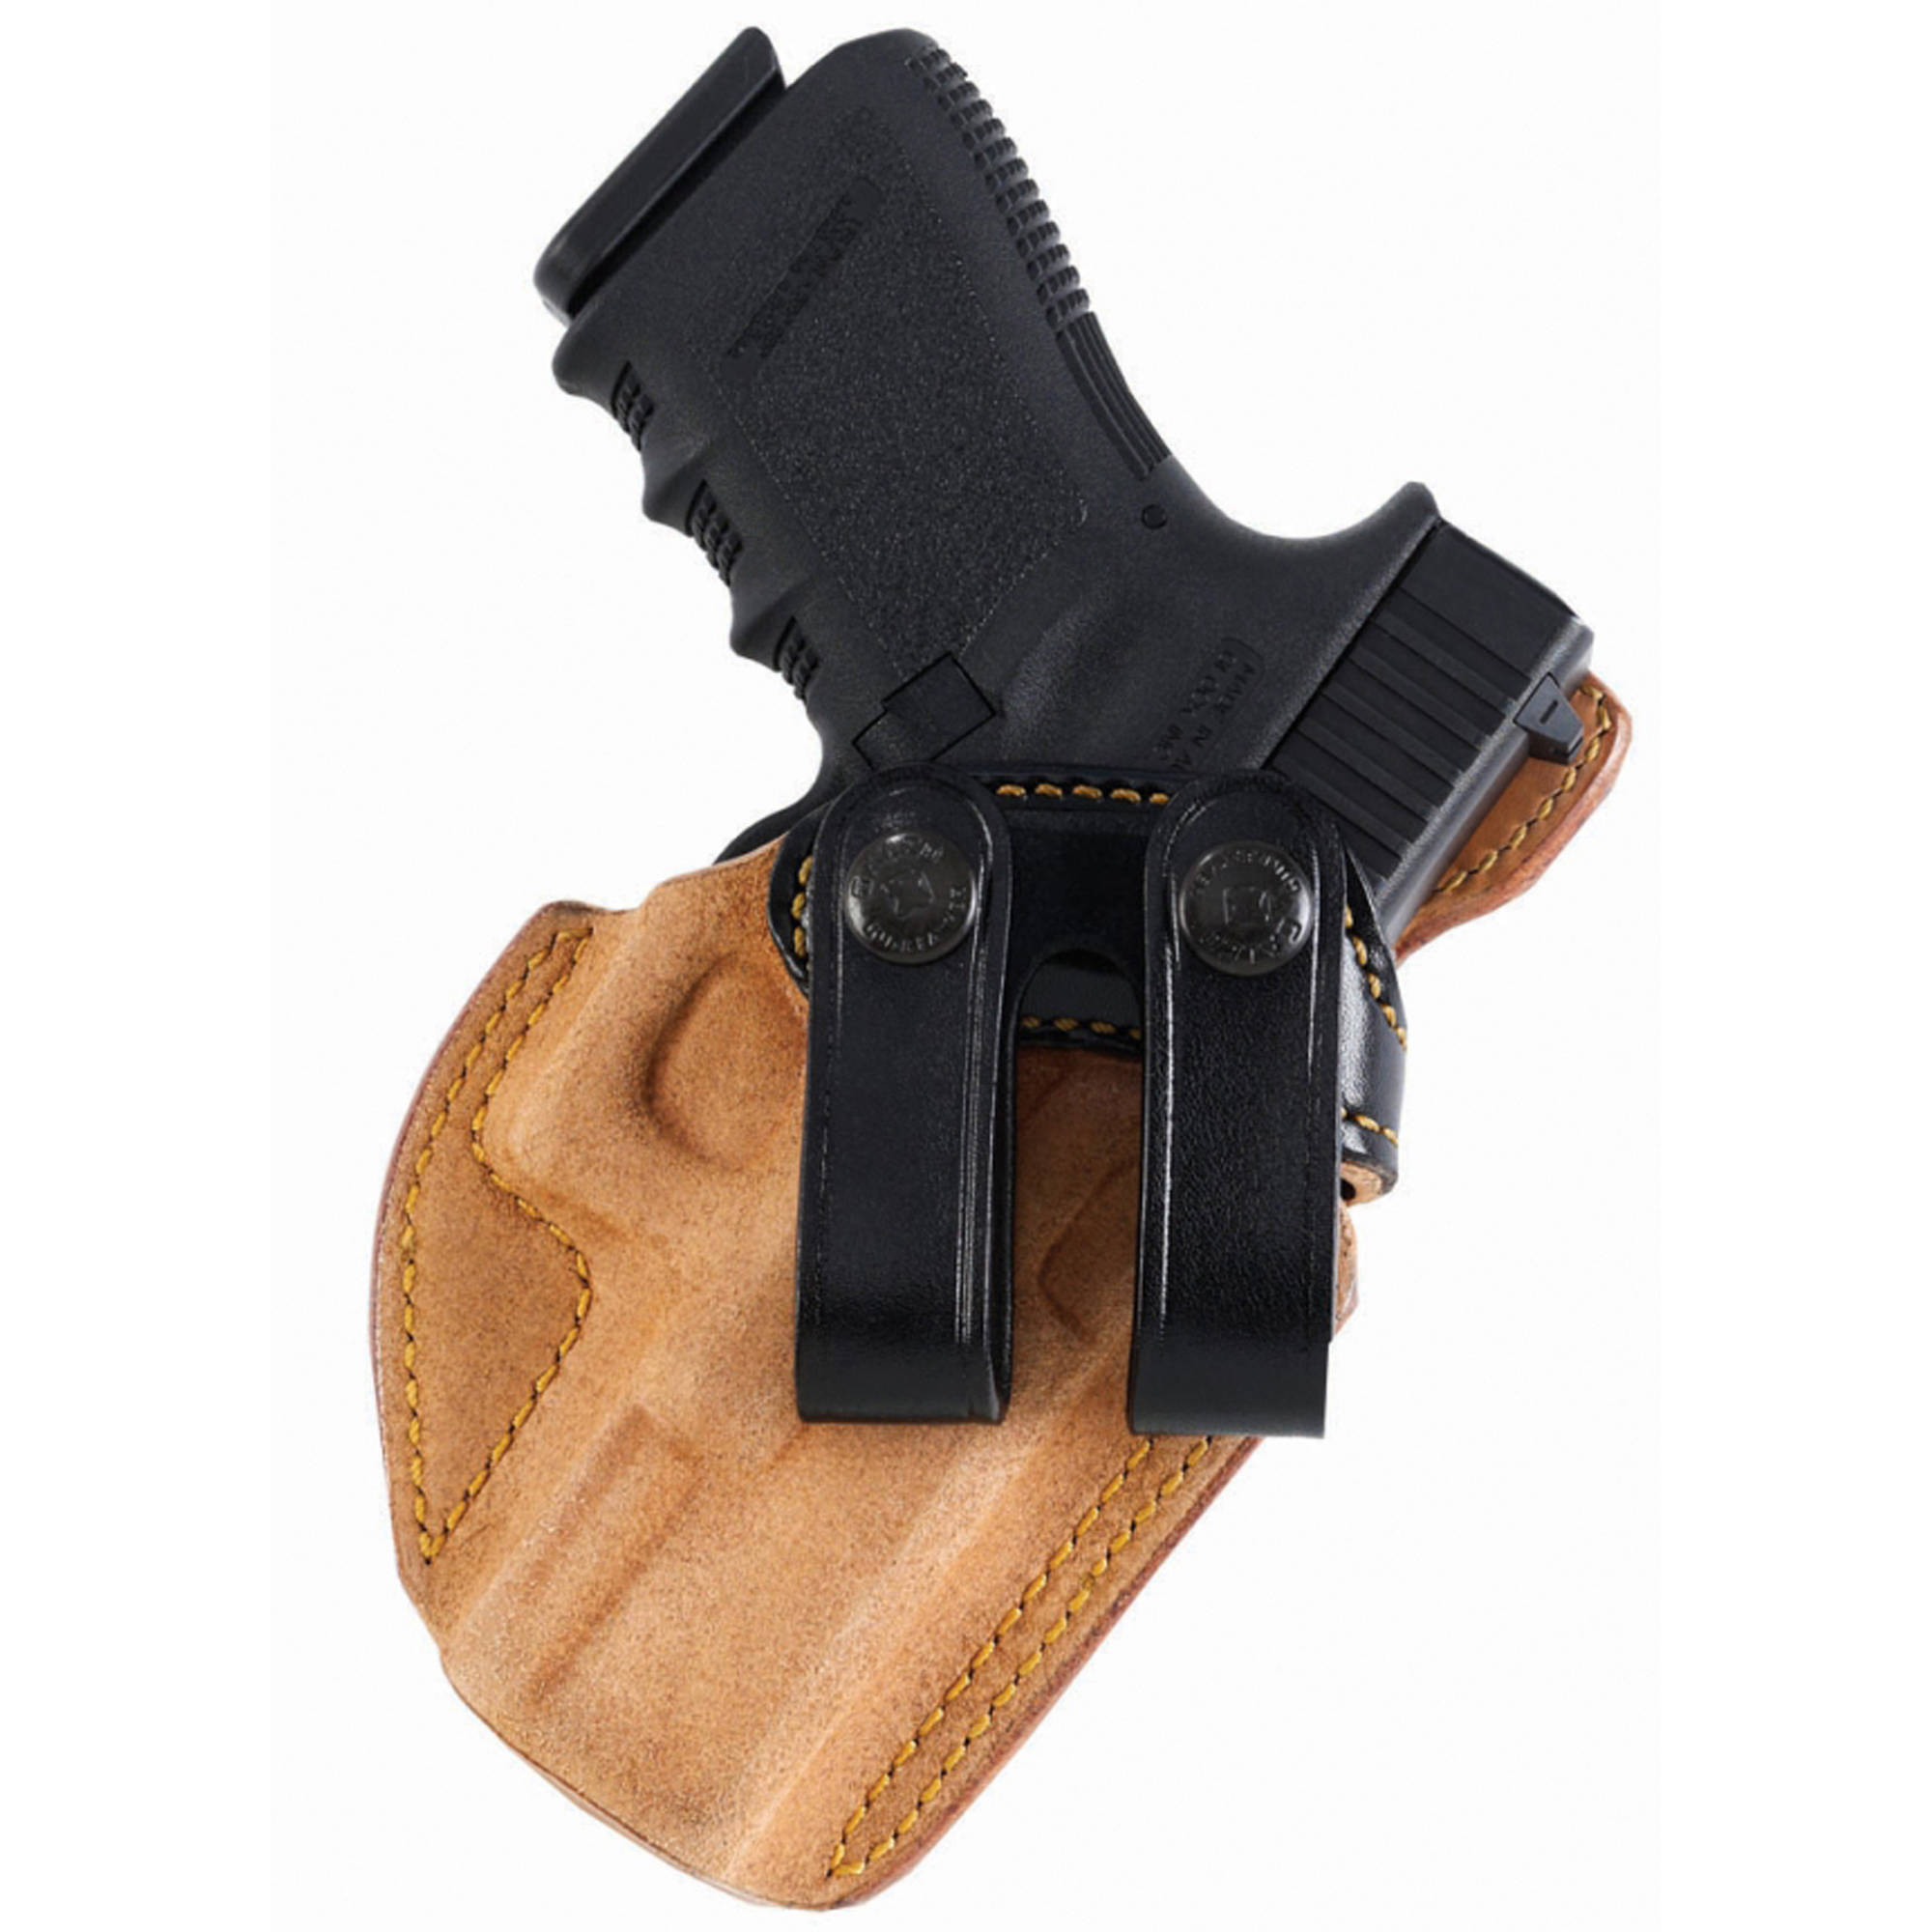 Galco Royal Guard Holster, Fits Glock 29 30, Right Hand, Black Leather by Galco